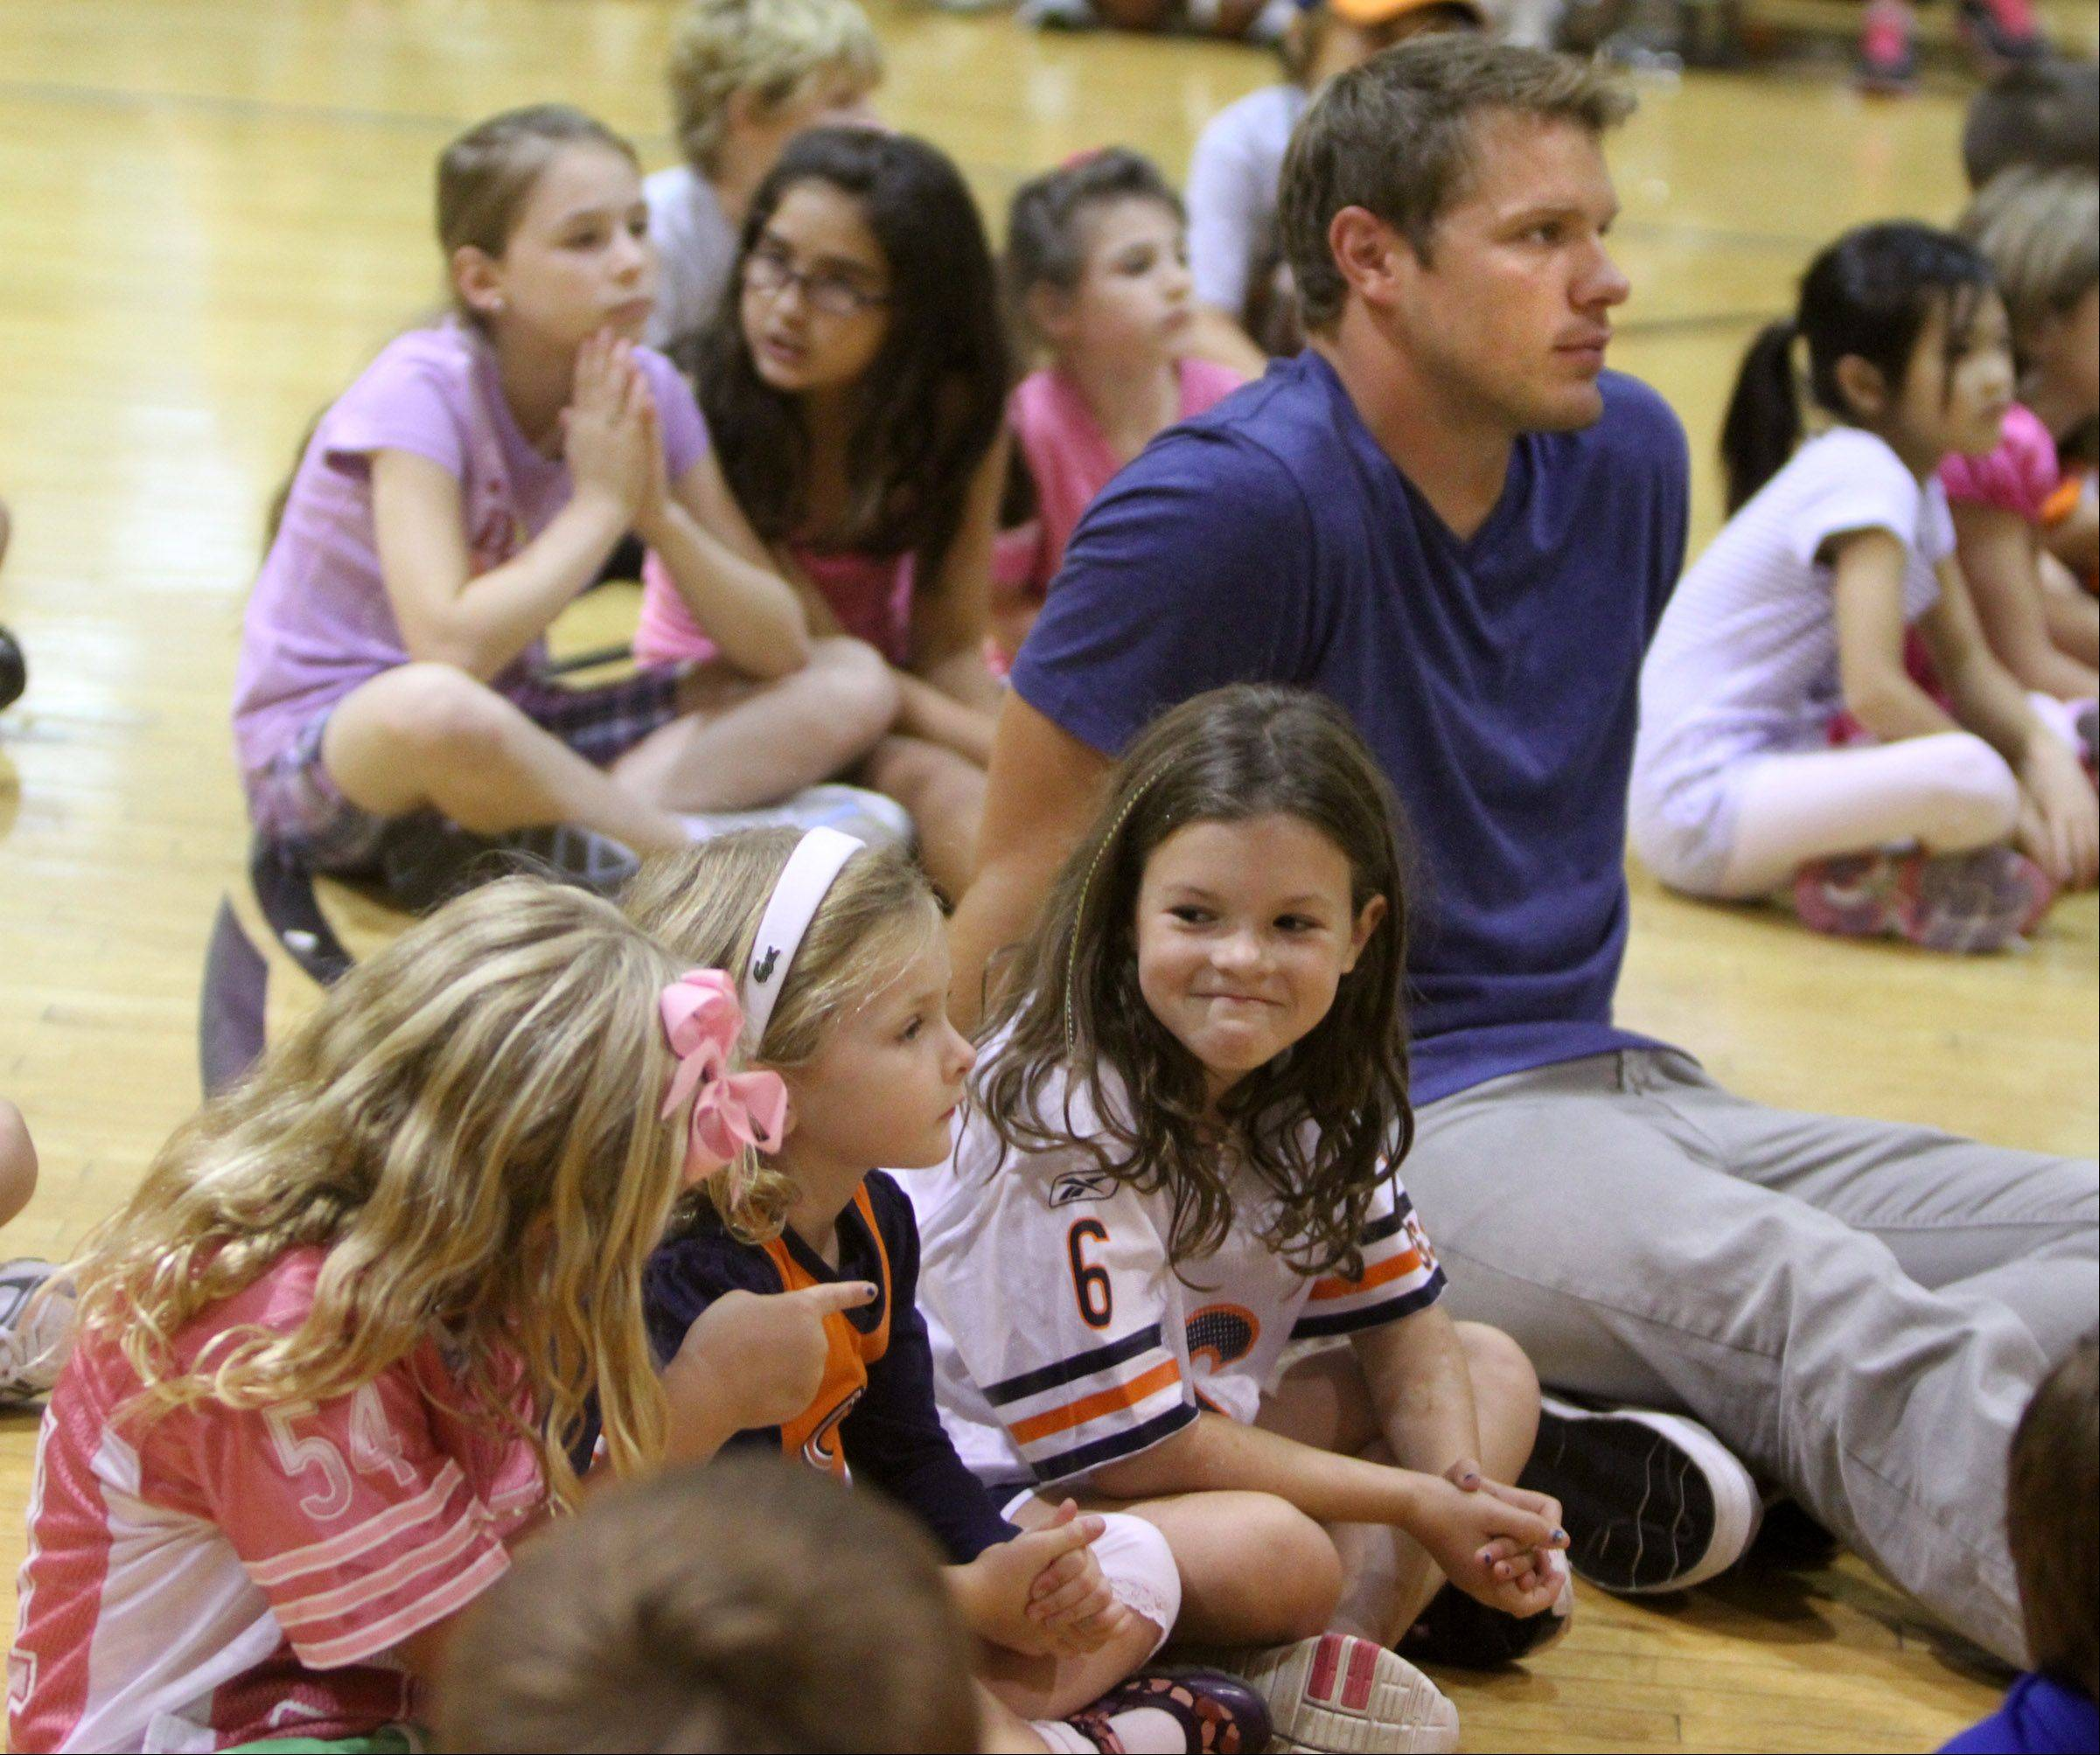 Macy Goodman, 7, center, wore a Jay Cutler jersey on the day she got to sit next to Caleb Hanie, then the Bears' backup quarterback, during a clinic on nutrition and staying active last September in Palatine.